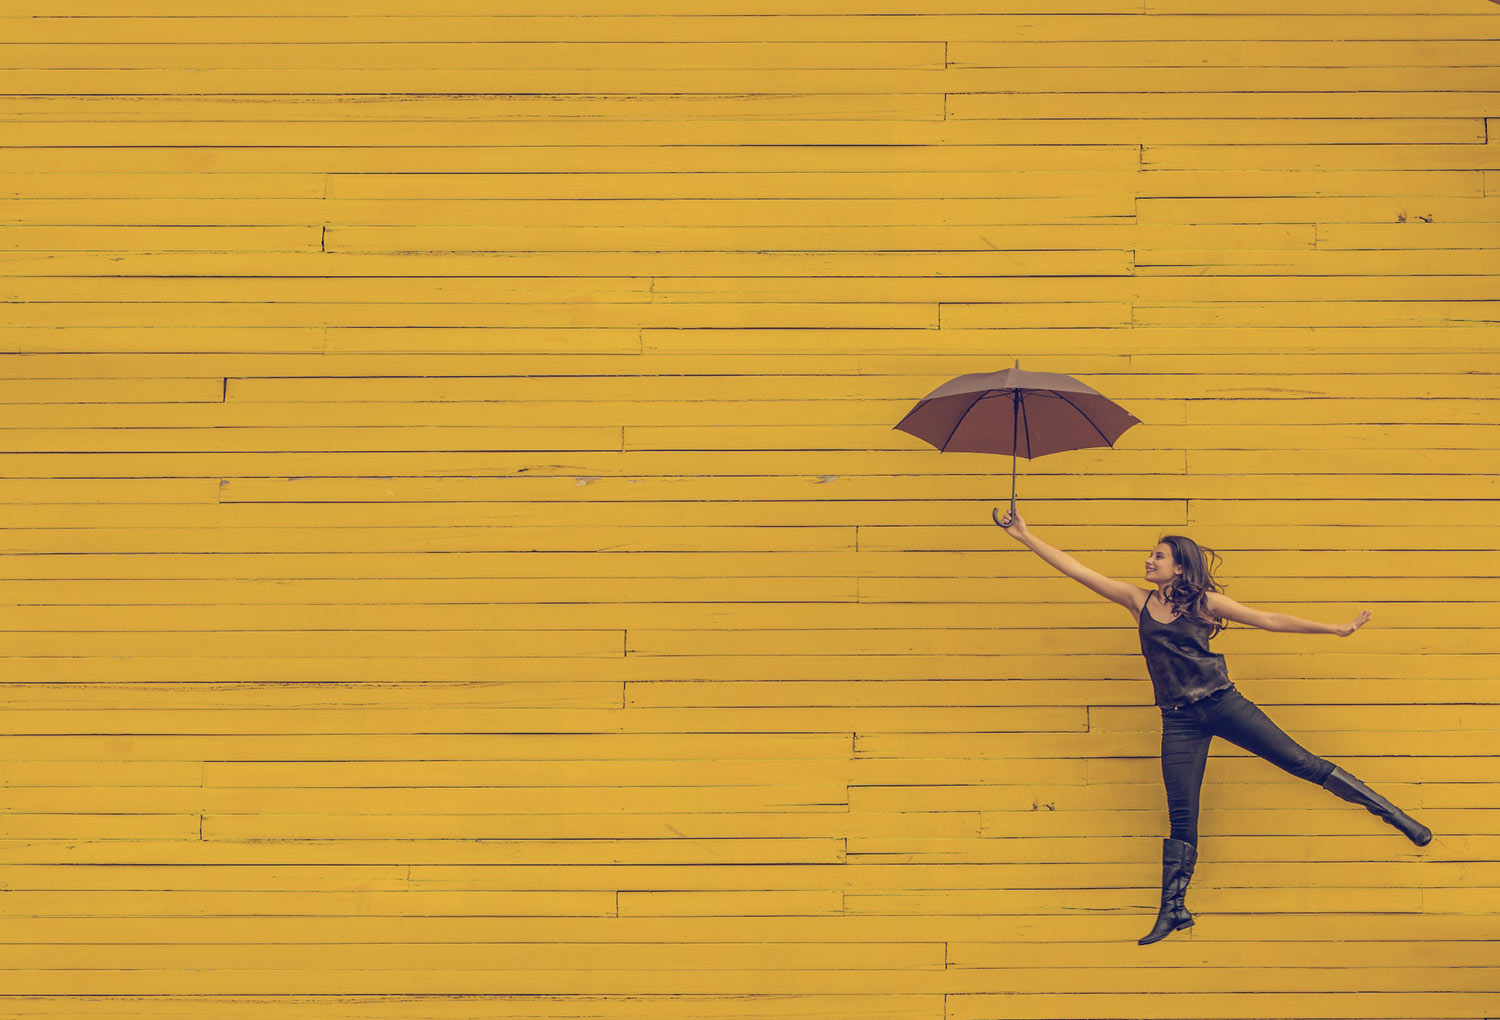 woman-jumping-with-umbrella-yellow-wall